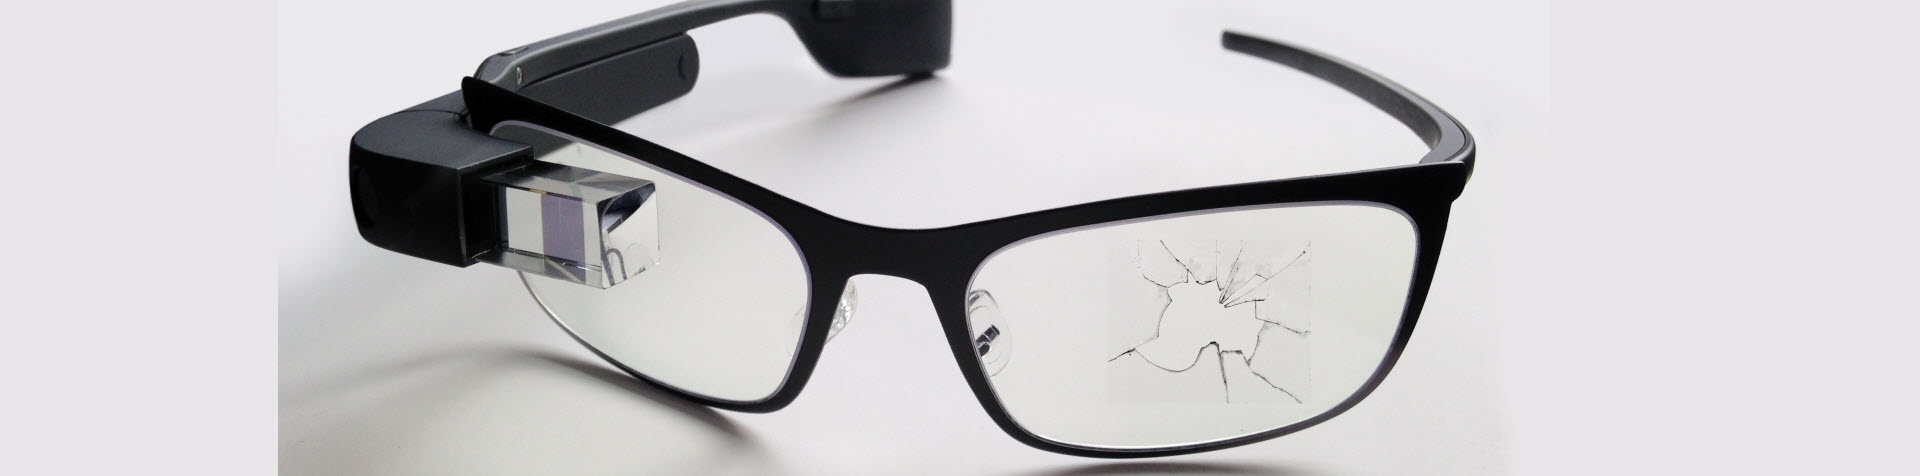 Why Google Glass Will Fail and Why This Won't Stop Smart Glasses' Success image